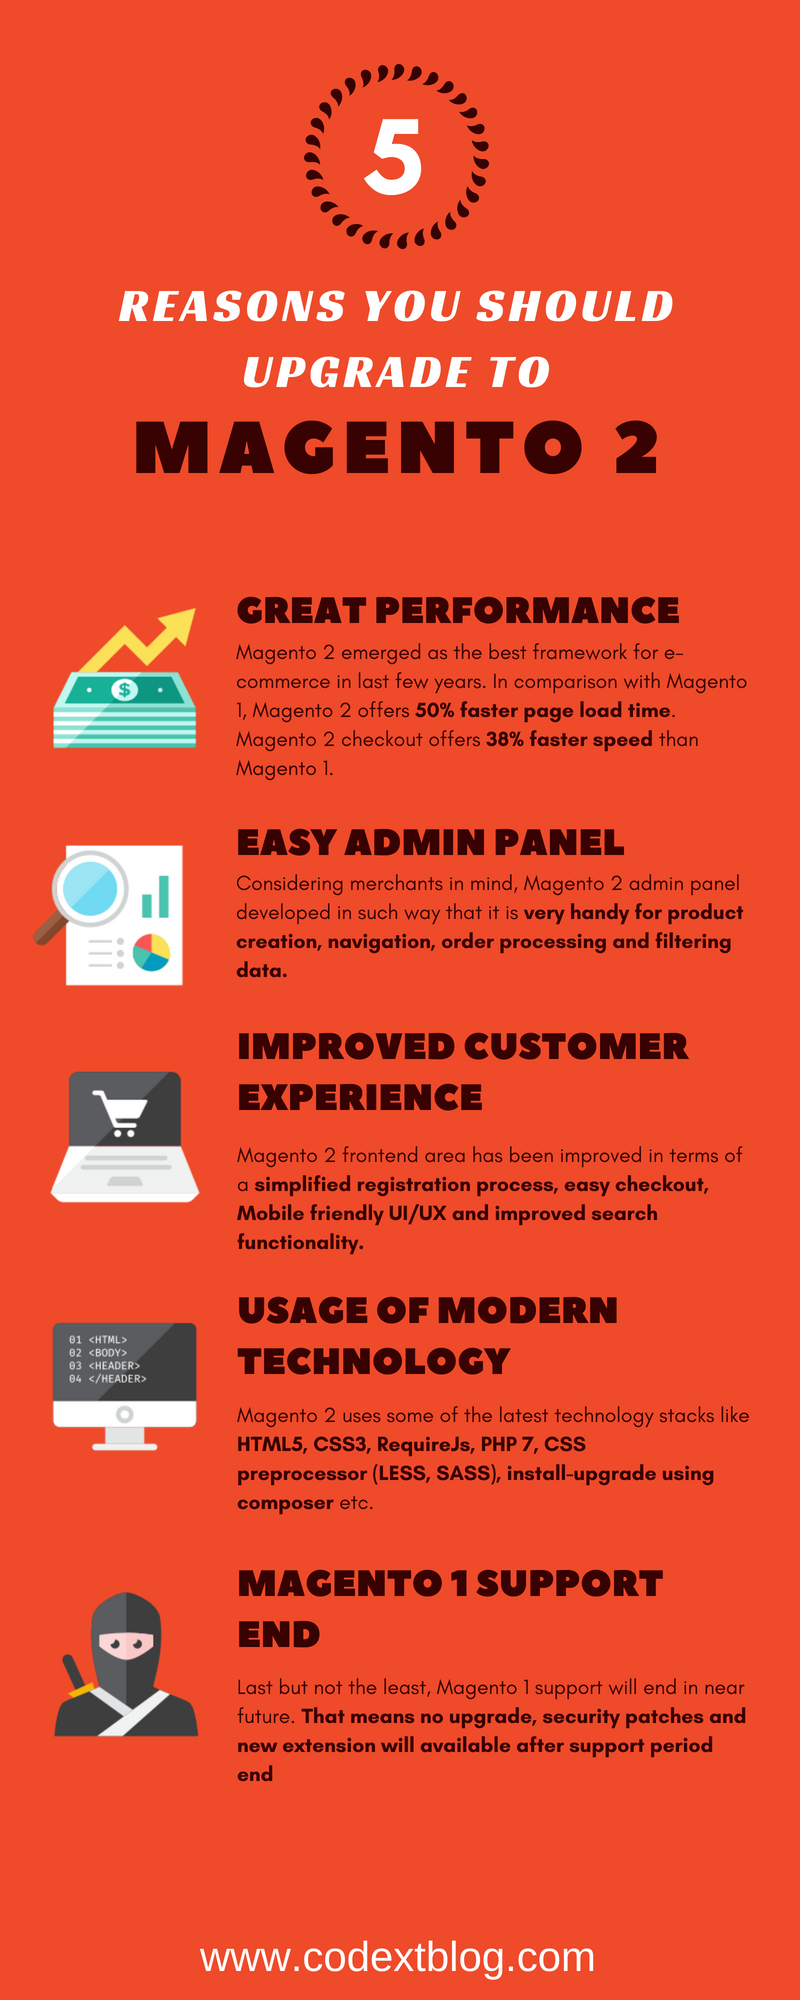 Reasons to Upgrade Magento 2